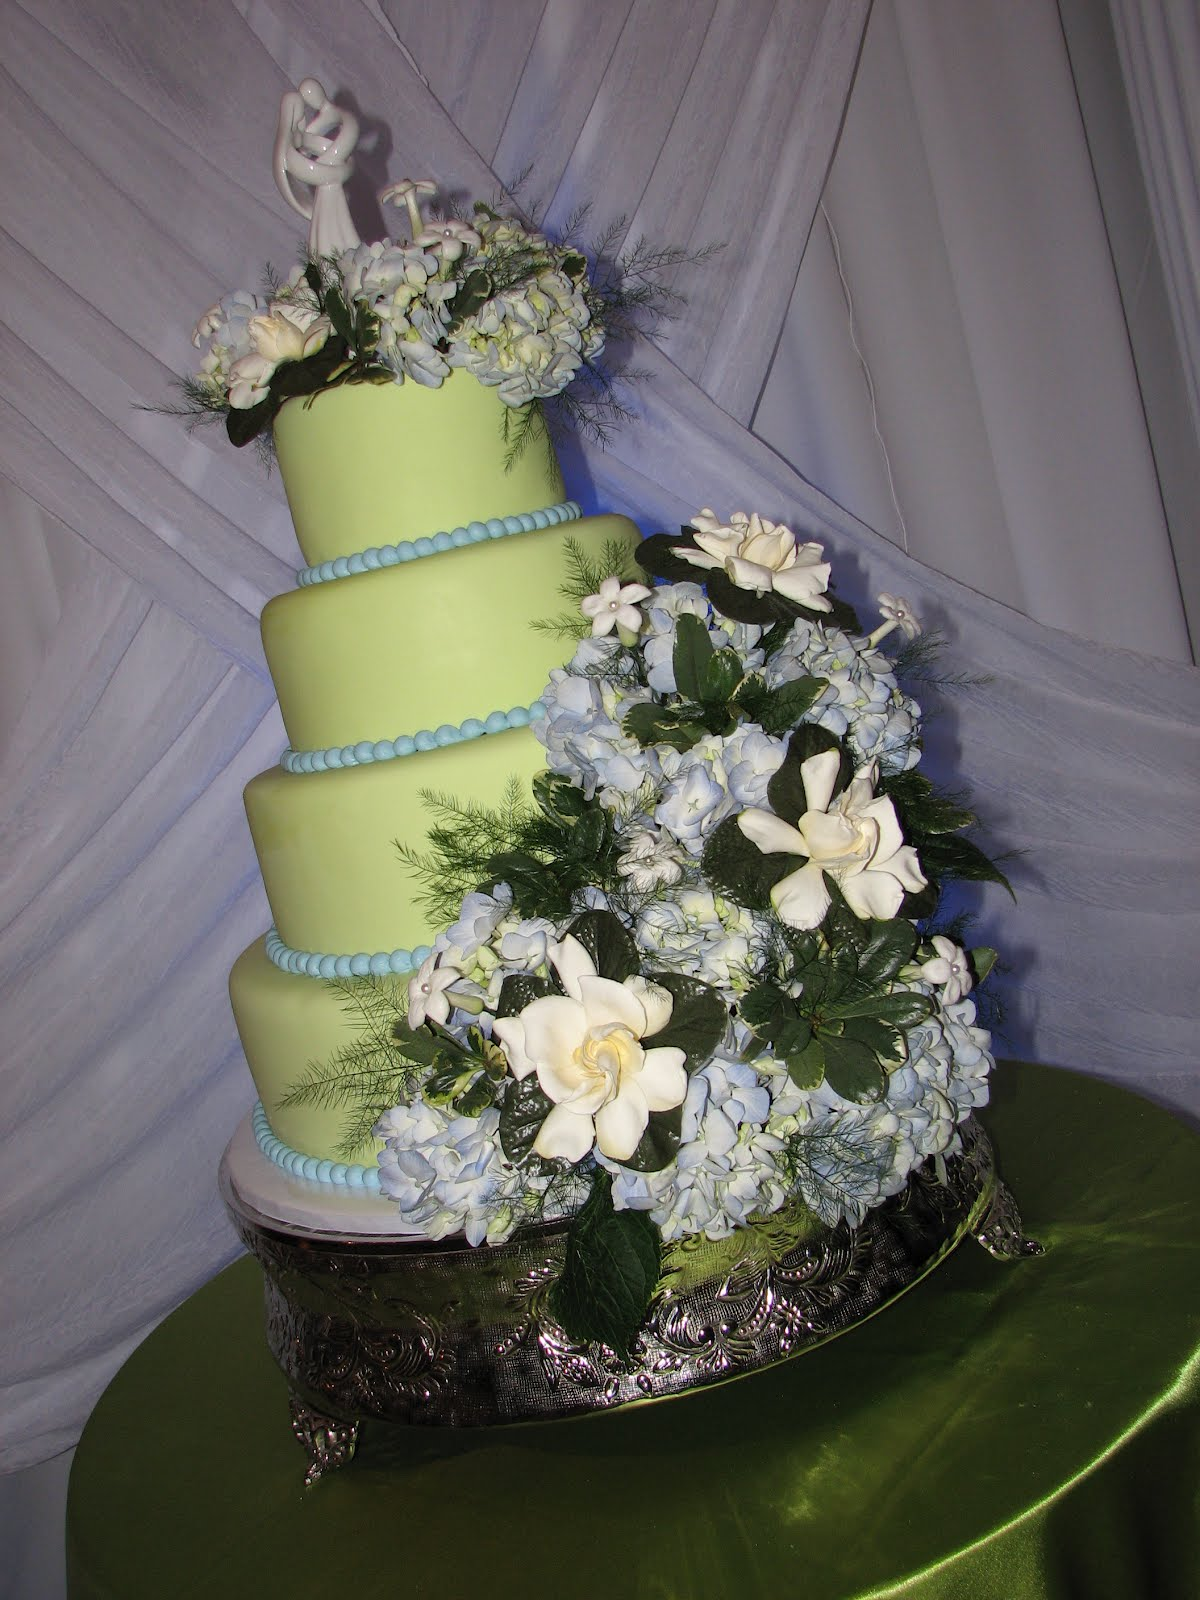 Decadent Designs: David and Mayra s Green/Blue Wedding Cake